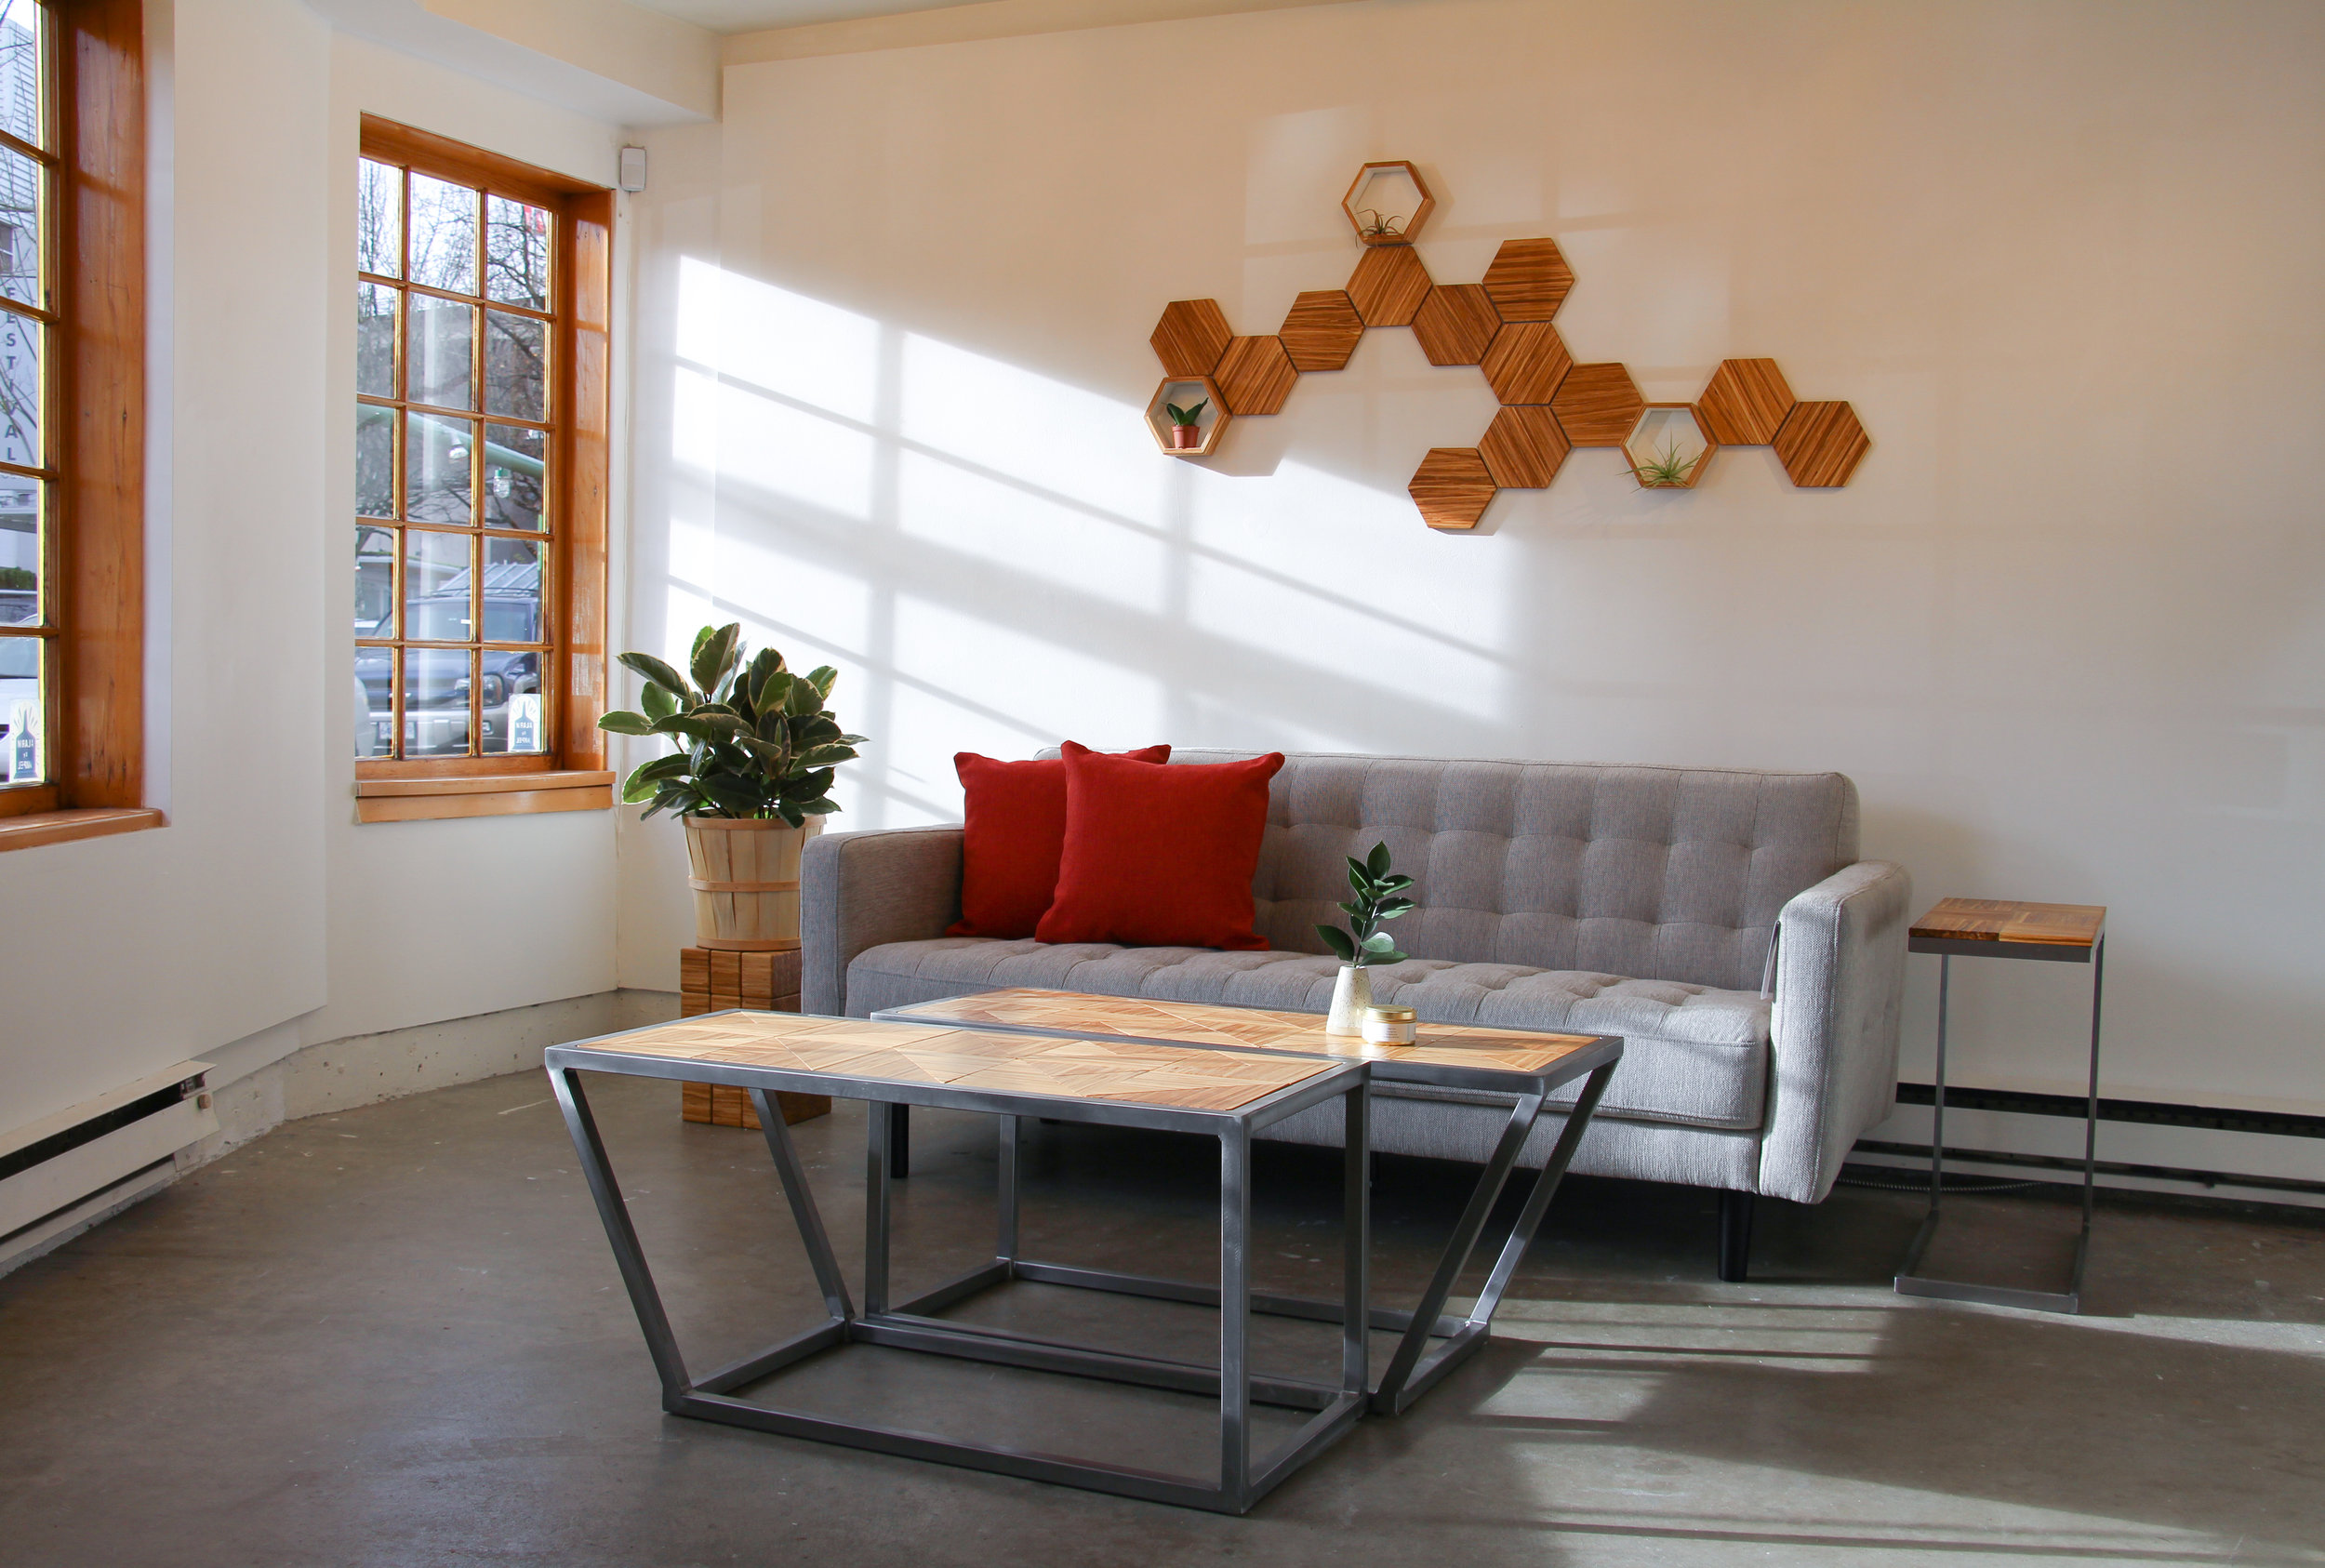 ChopValue designs adds sophistication to a living space.